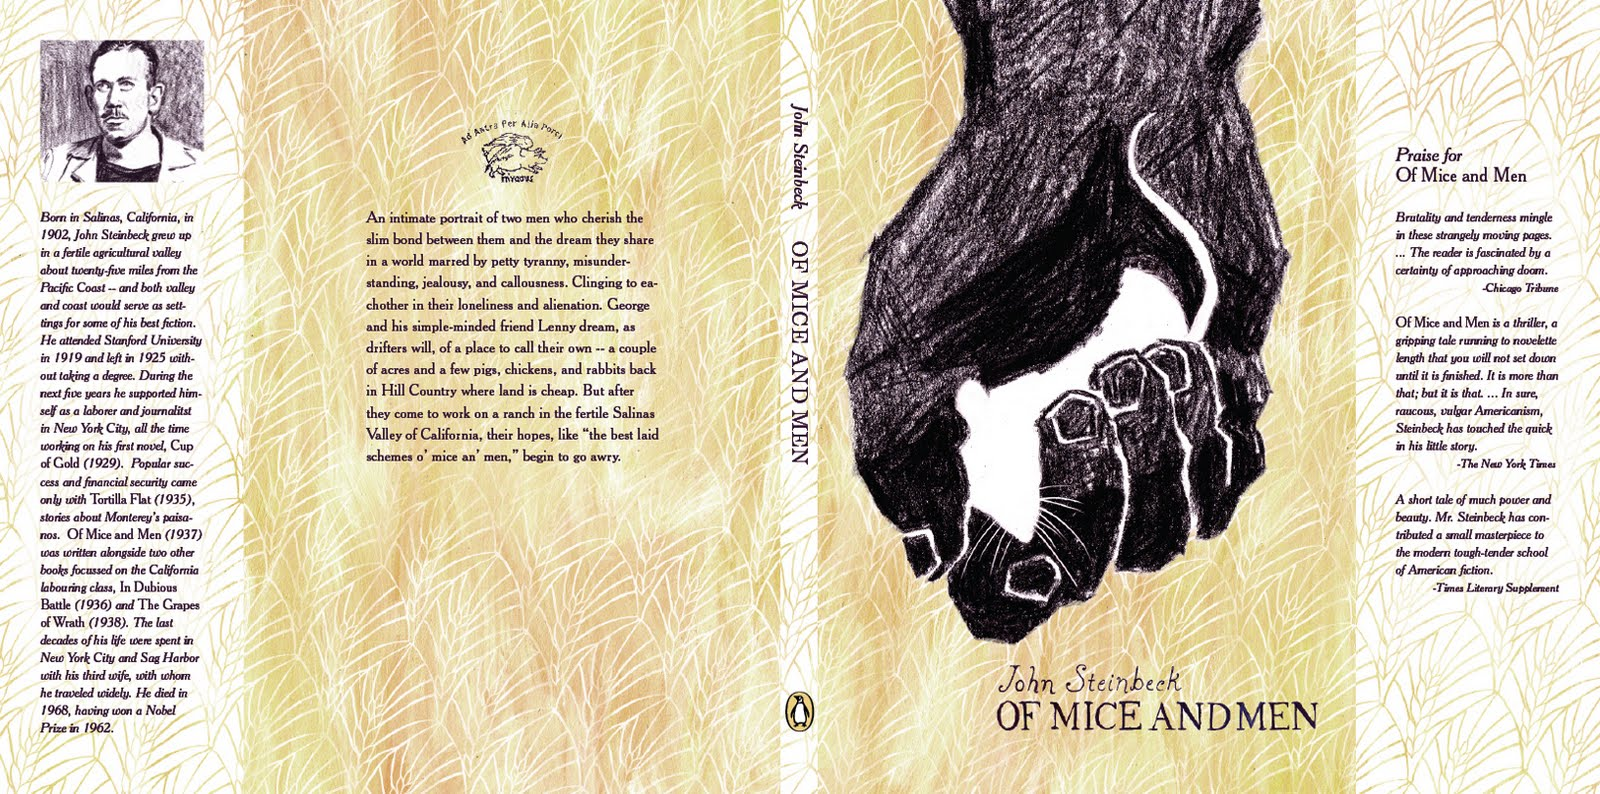 loneliness and alienation in of mice and men by john steinbeck About of mice and men a controversial tale of friendship and tragedy during the great depression over seventy-five years since its first publication, steinbeck's tale of commitment, loneliness, hope, and loss remains one of.